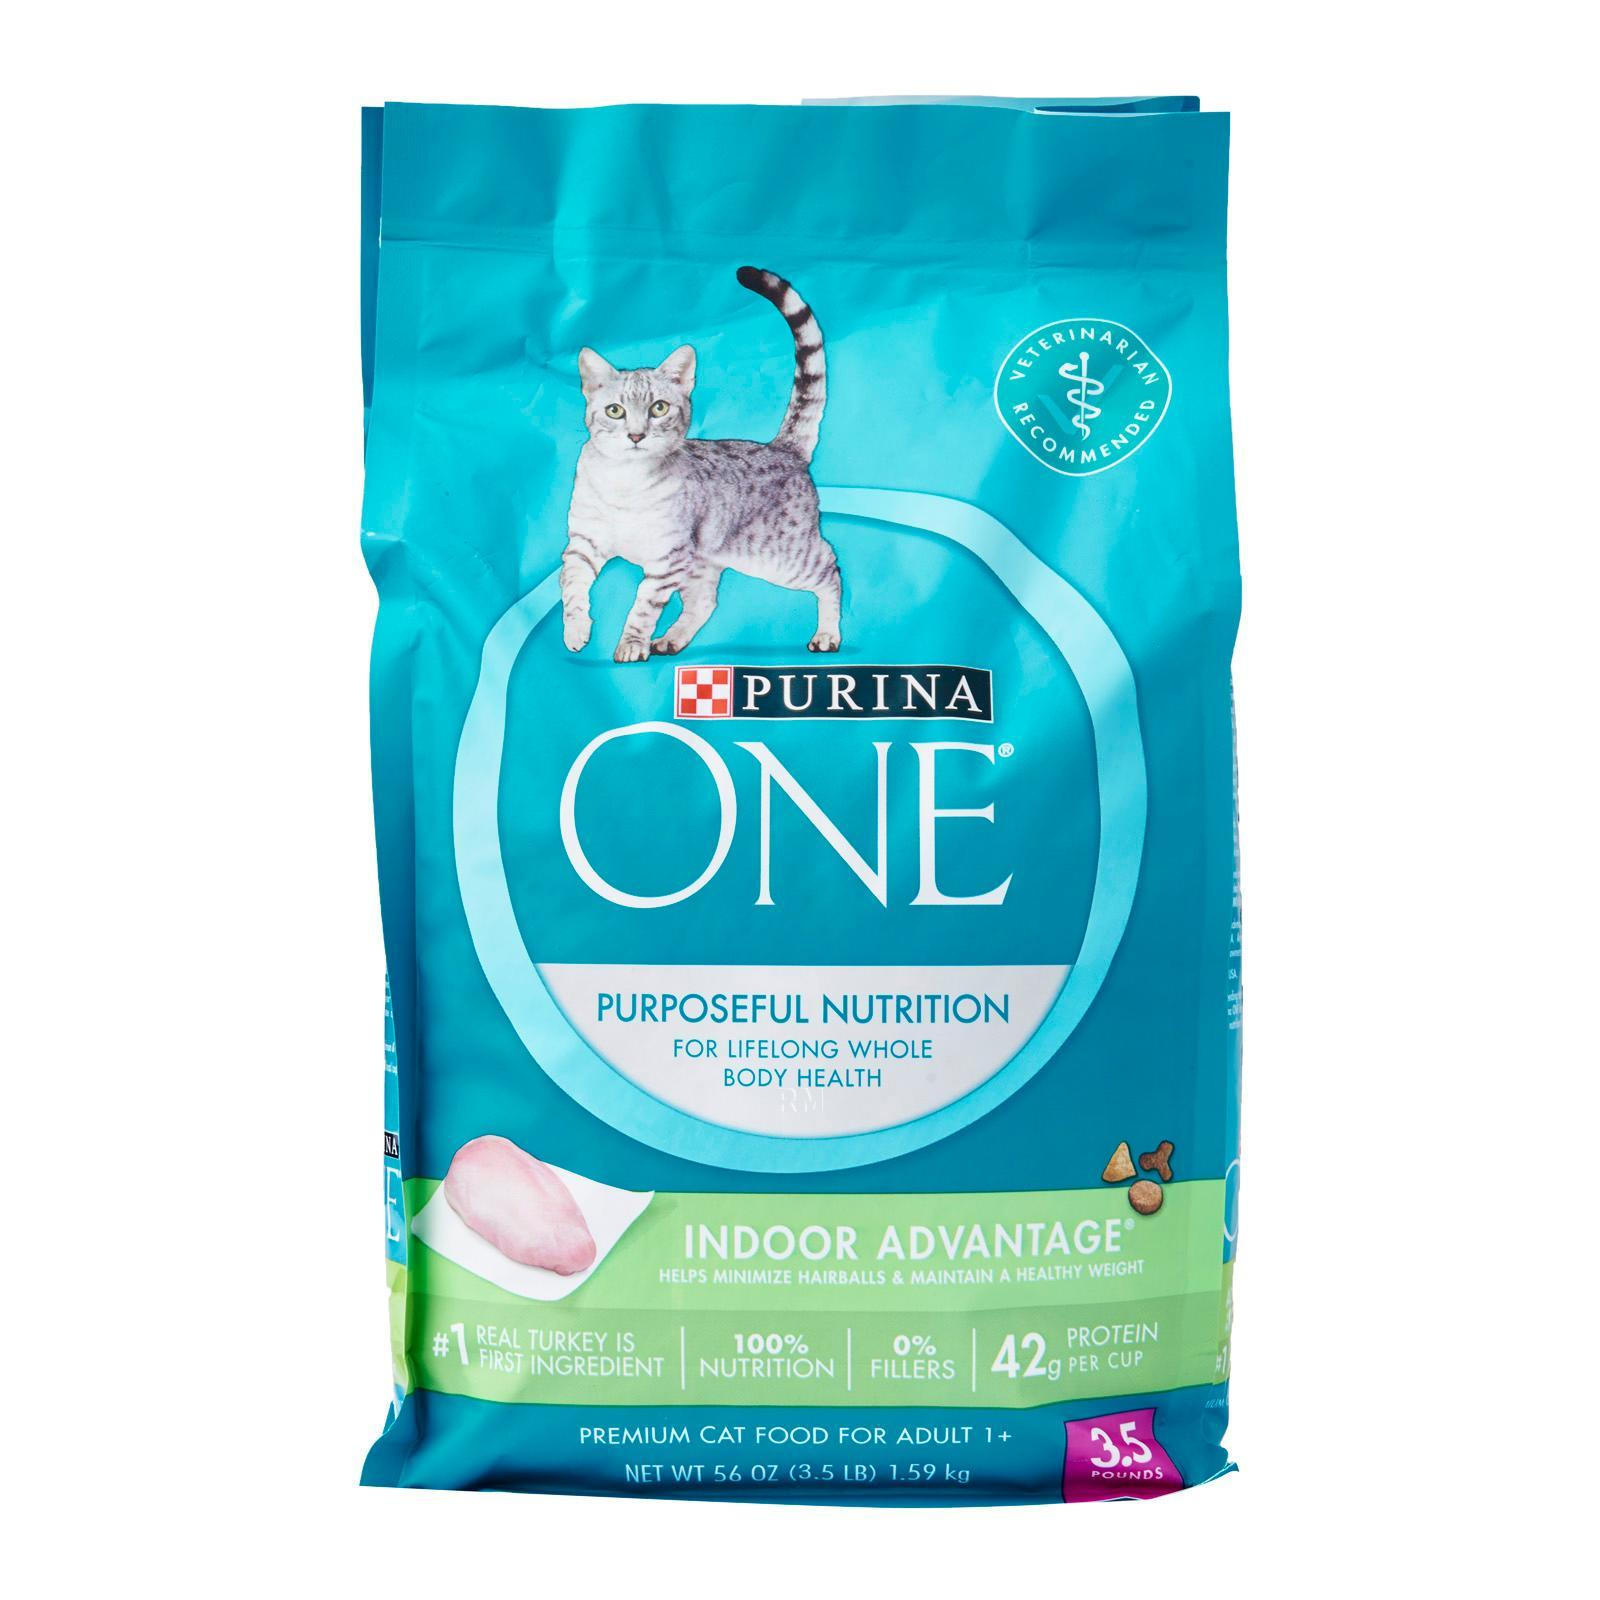 Purina ONE Cat Indoor Advantage Dry Cat Food